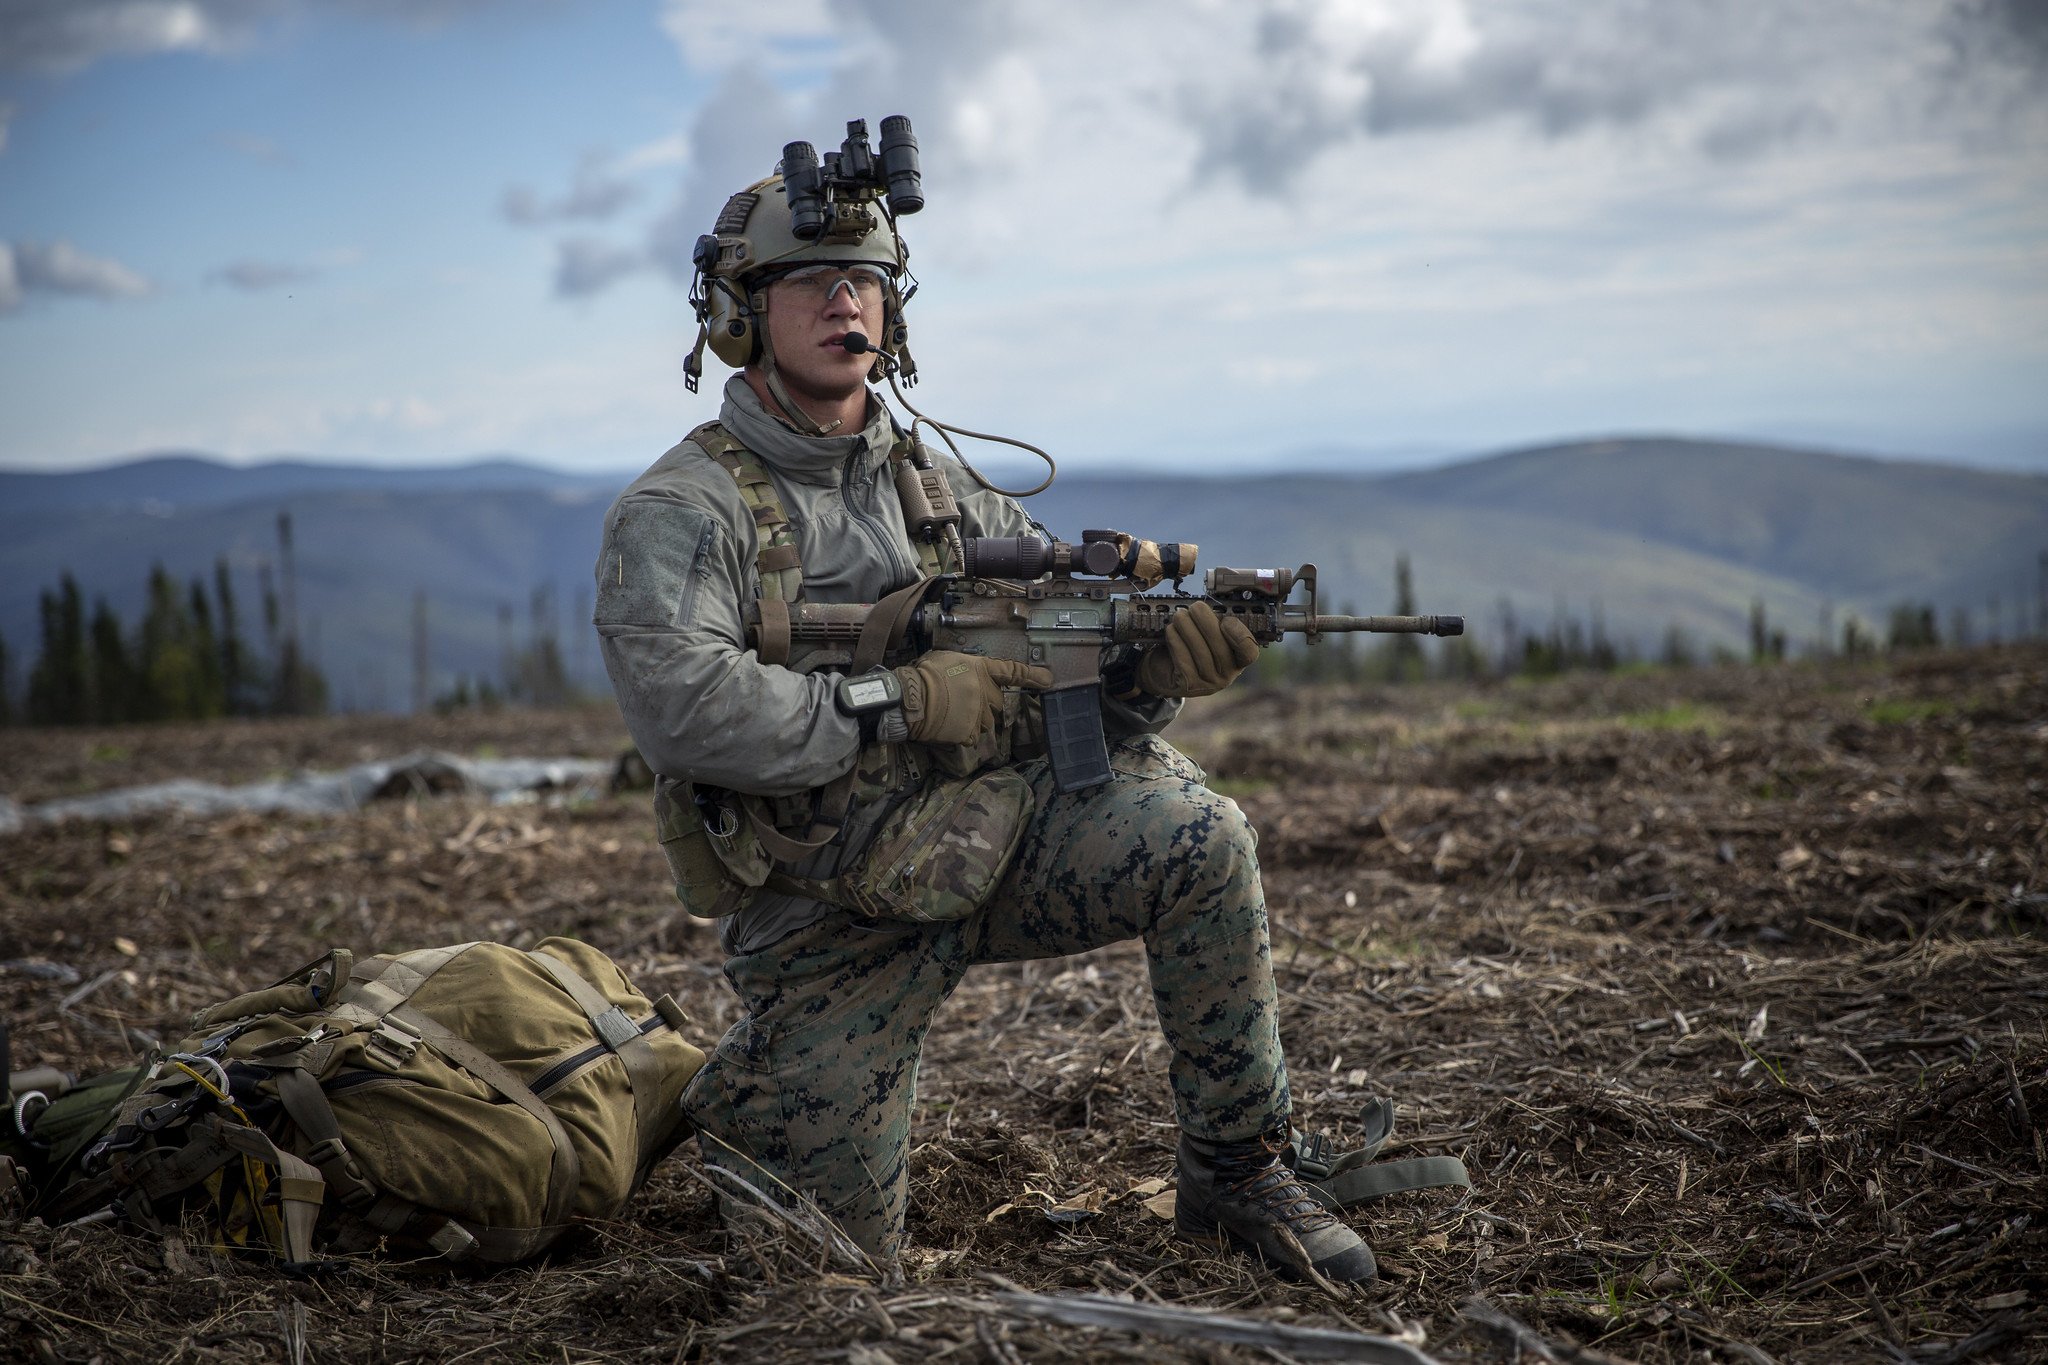 Hospital Corpsman 3rd Class Wayne Jaworski provides security after completing a free-fall insert during a Marine Corps combat readiness evaluation at Eielson Air Force Base, Alaska, Aug. 21, 2020. (Cpl. Israel Chincio/Marine Corps)